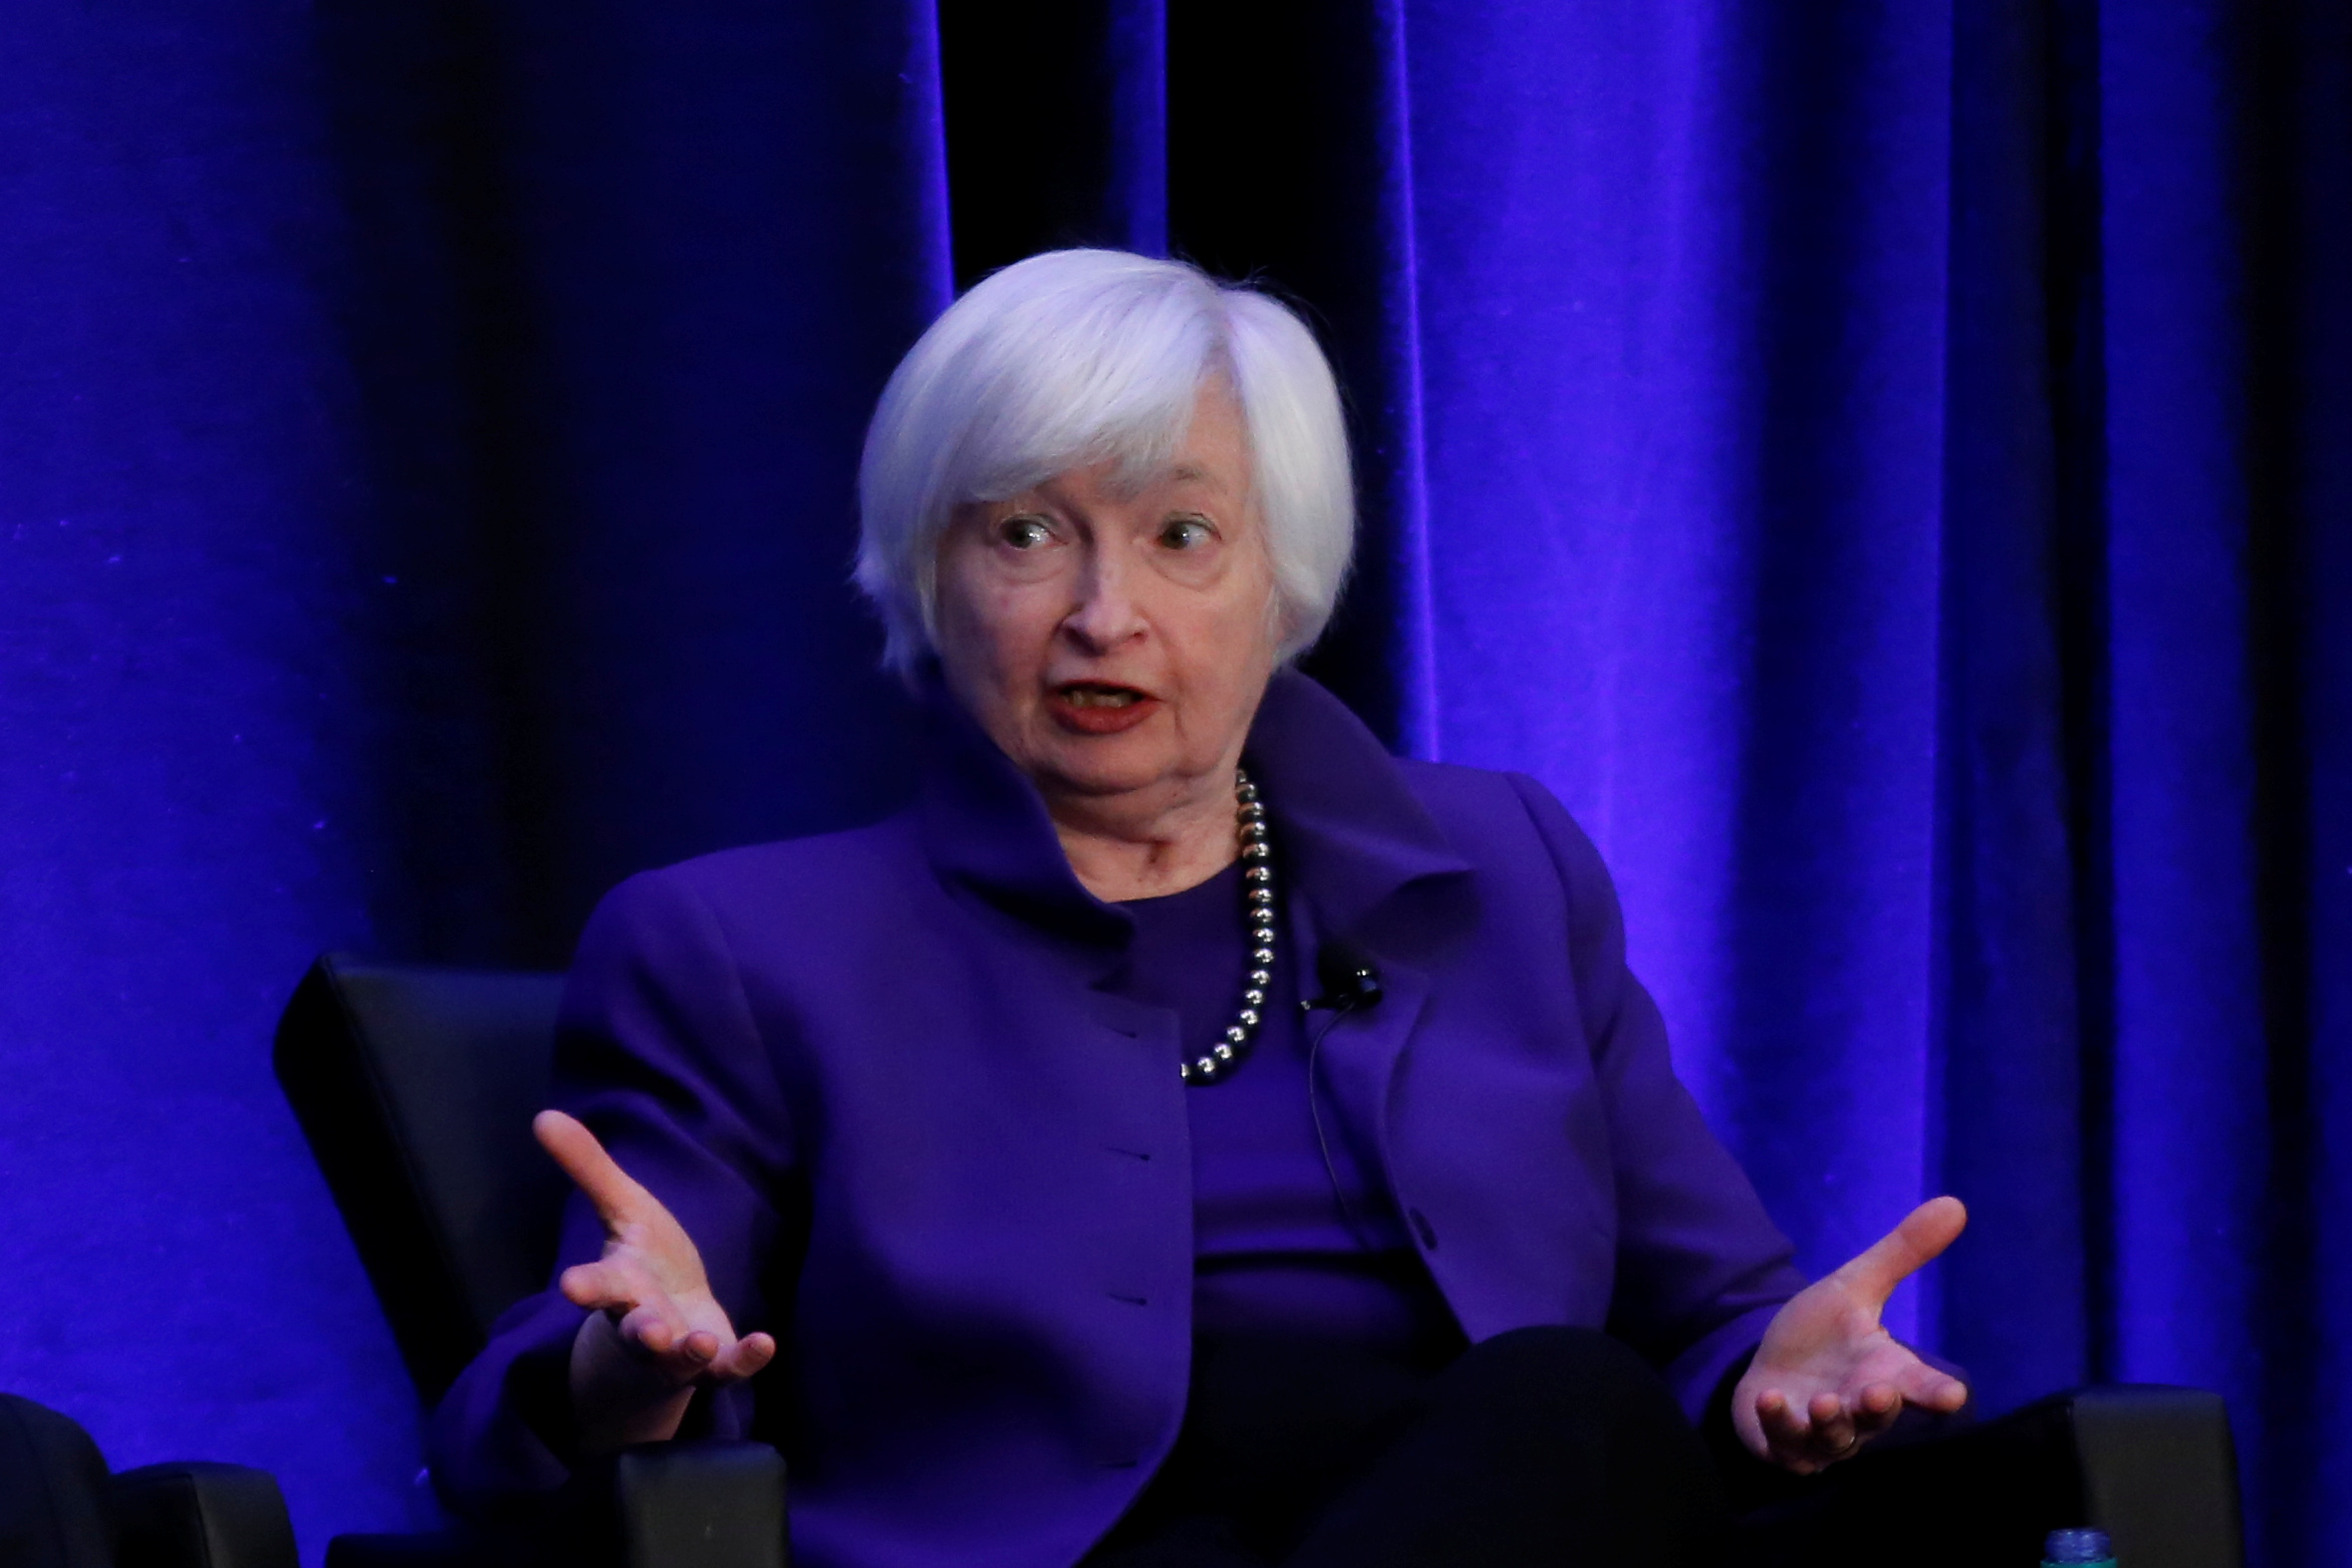 FILE PHOTO: Former Federal Reserve Chairman Janet Yellen speaks during a panel discussion at the American Economic Association/Allied Social Science Association (ASSA) 2019 meeting in Atlanta, Georgia, U.S., January 4, 2019.  REUTERS/Christopher Aluka Berry